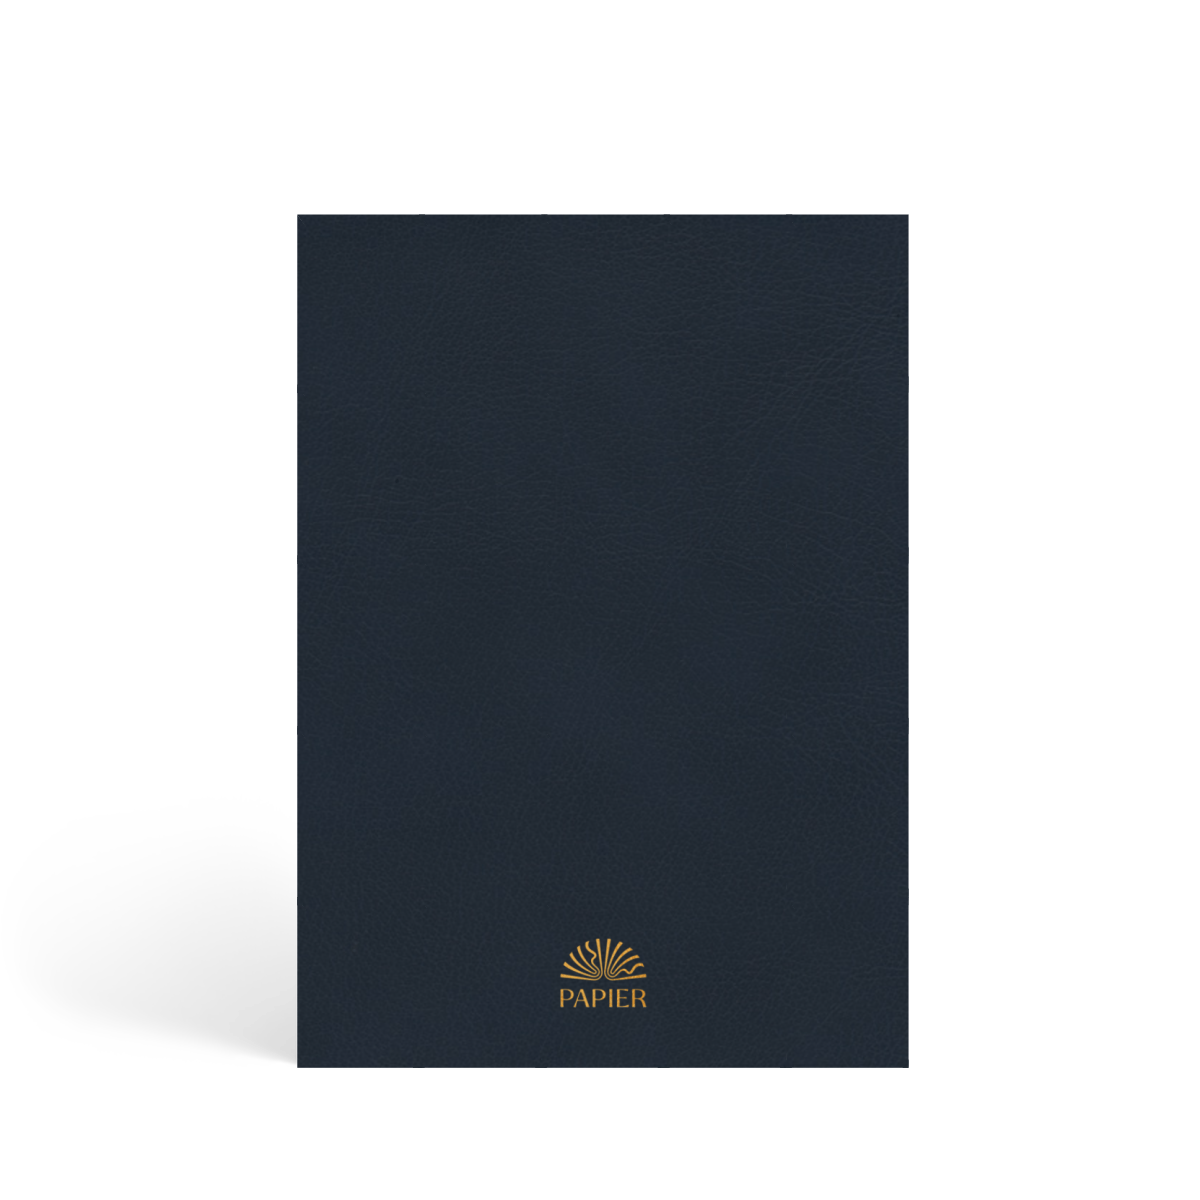 Https%3a%2f%2fwww.papier.com%2fproduct image%2f95548%2f5%2fnavy monogram 23955 back 1573232799.png?ixlib=rb 1.1